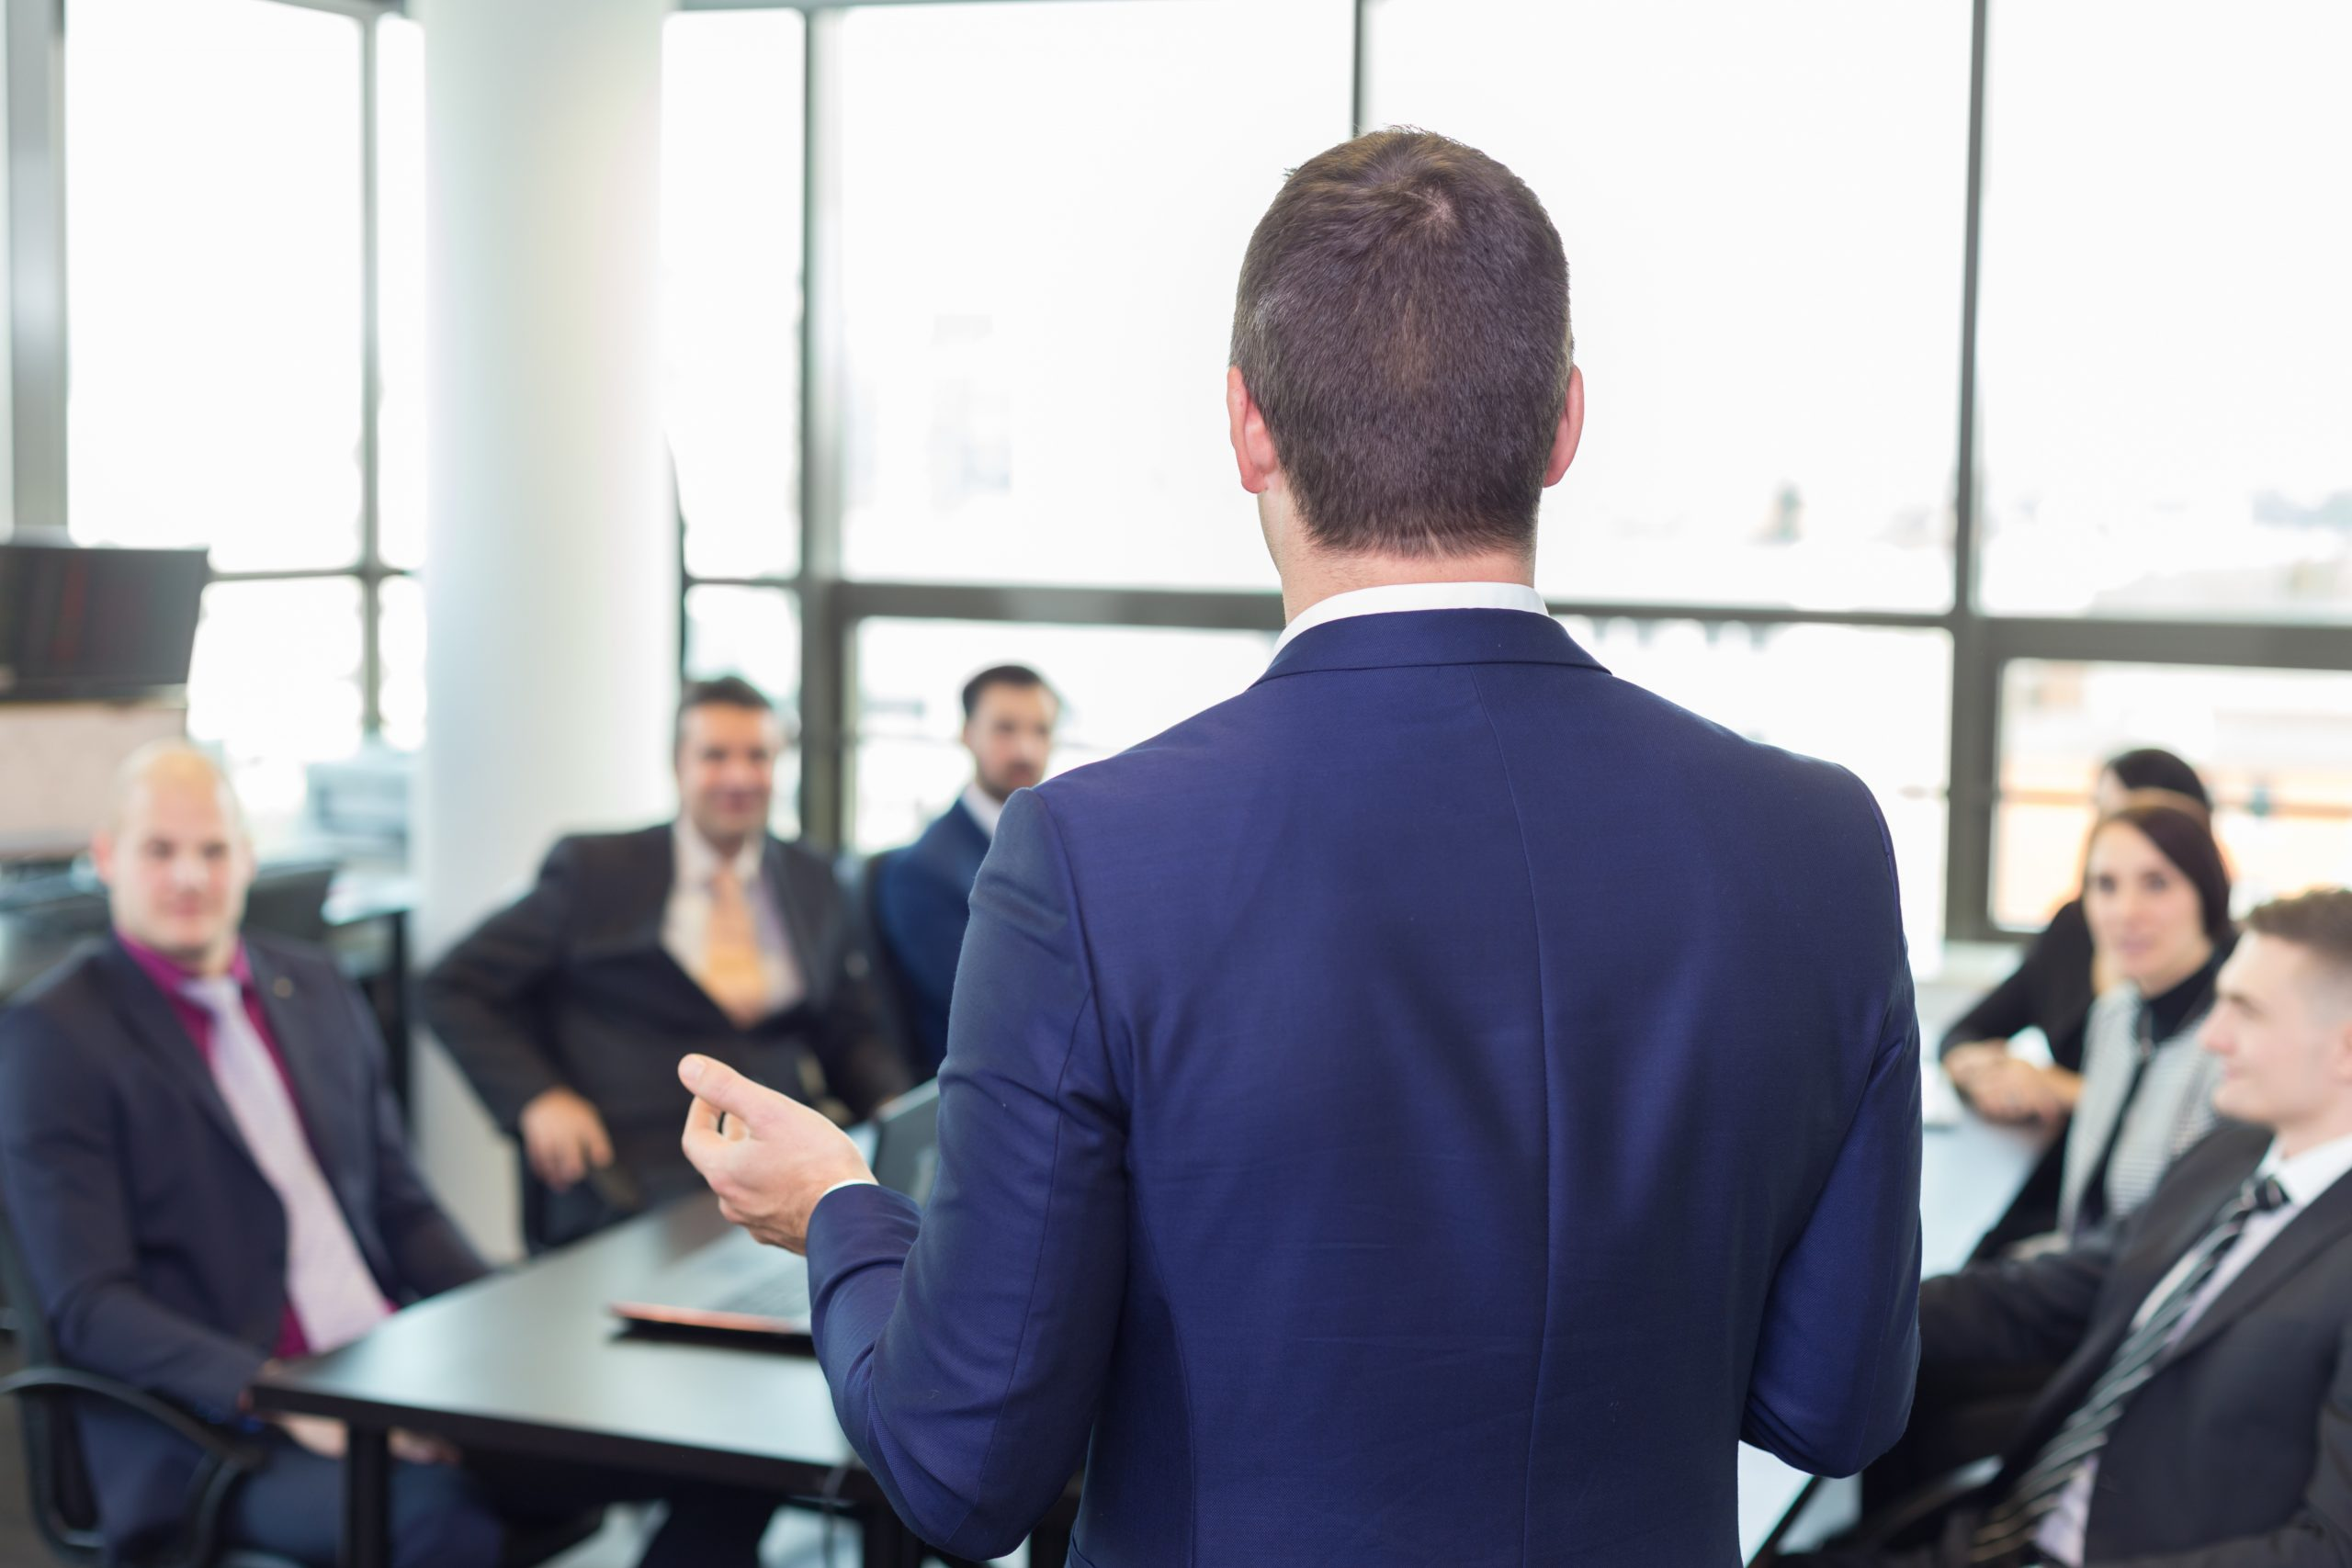 How many times should you practise a presentation?